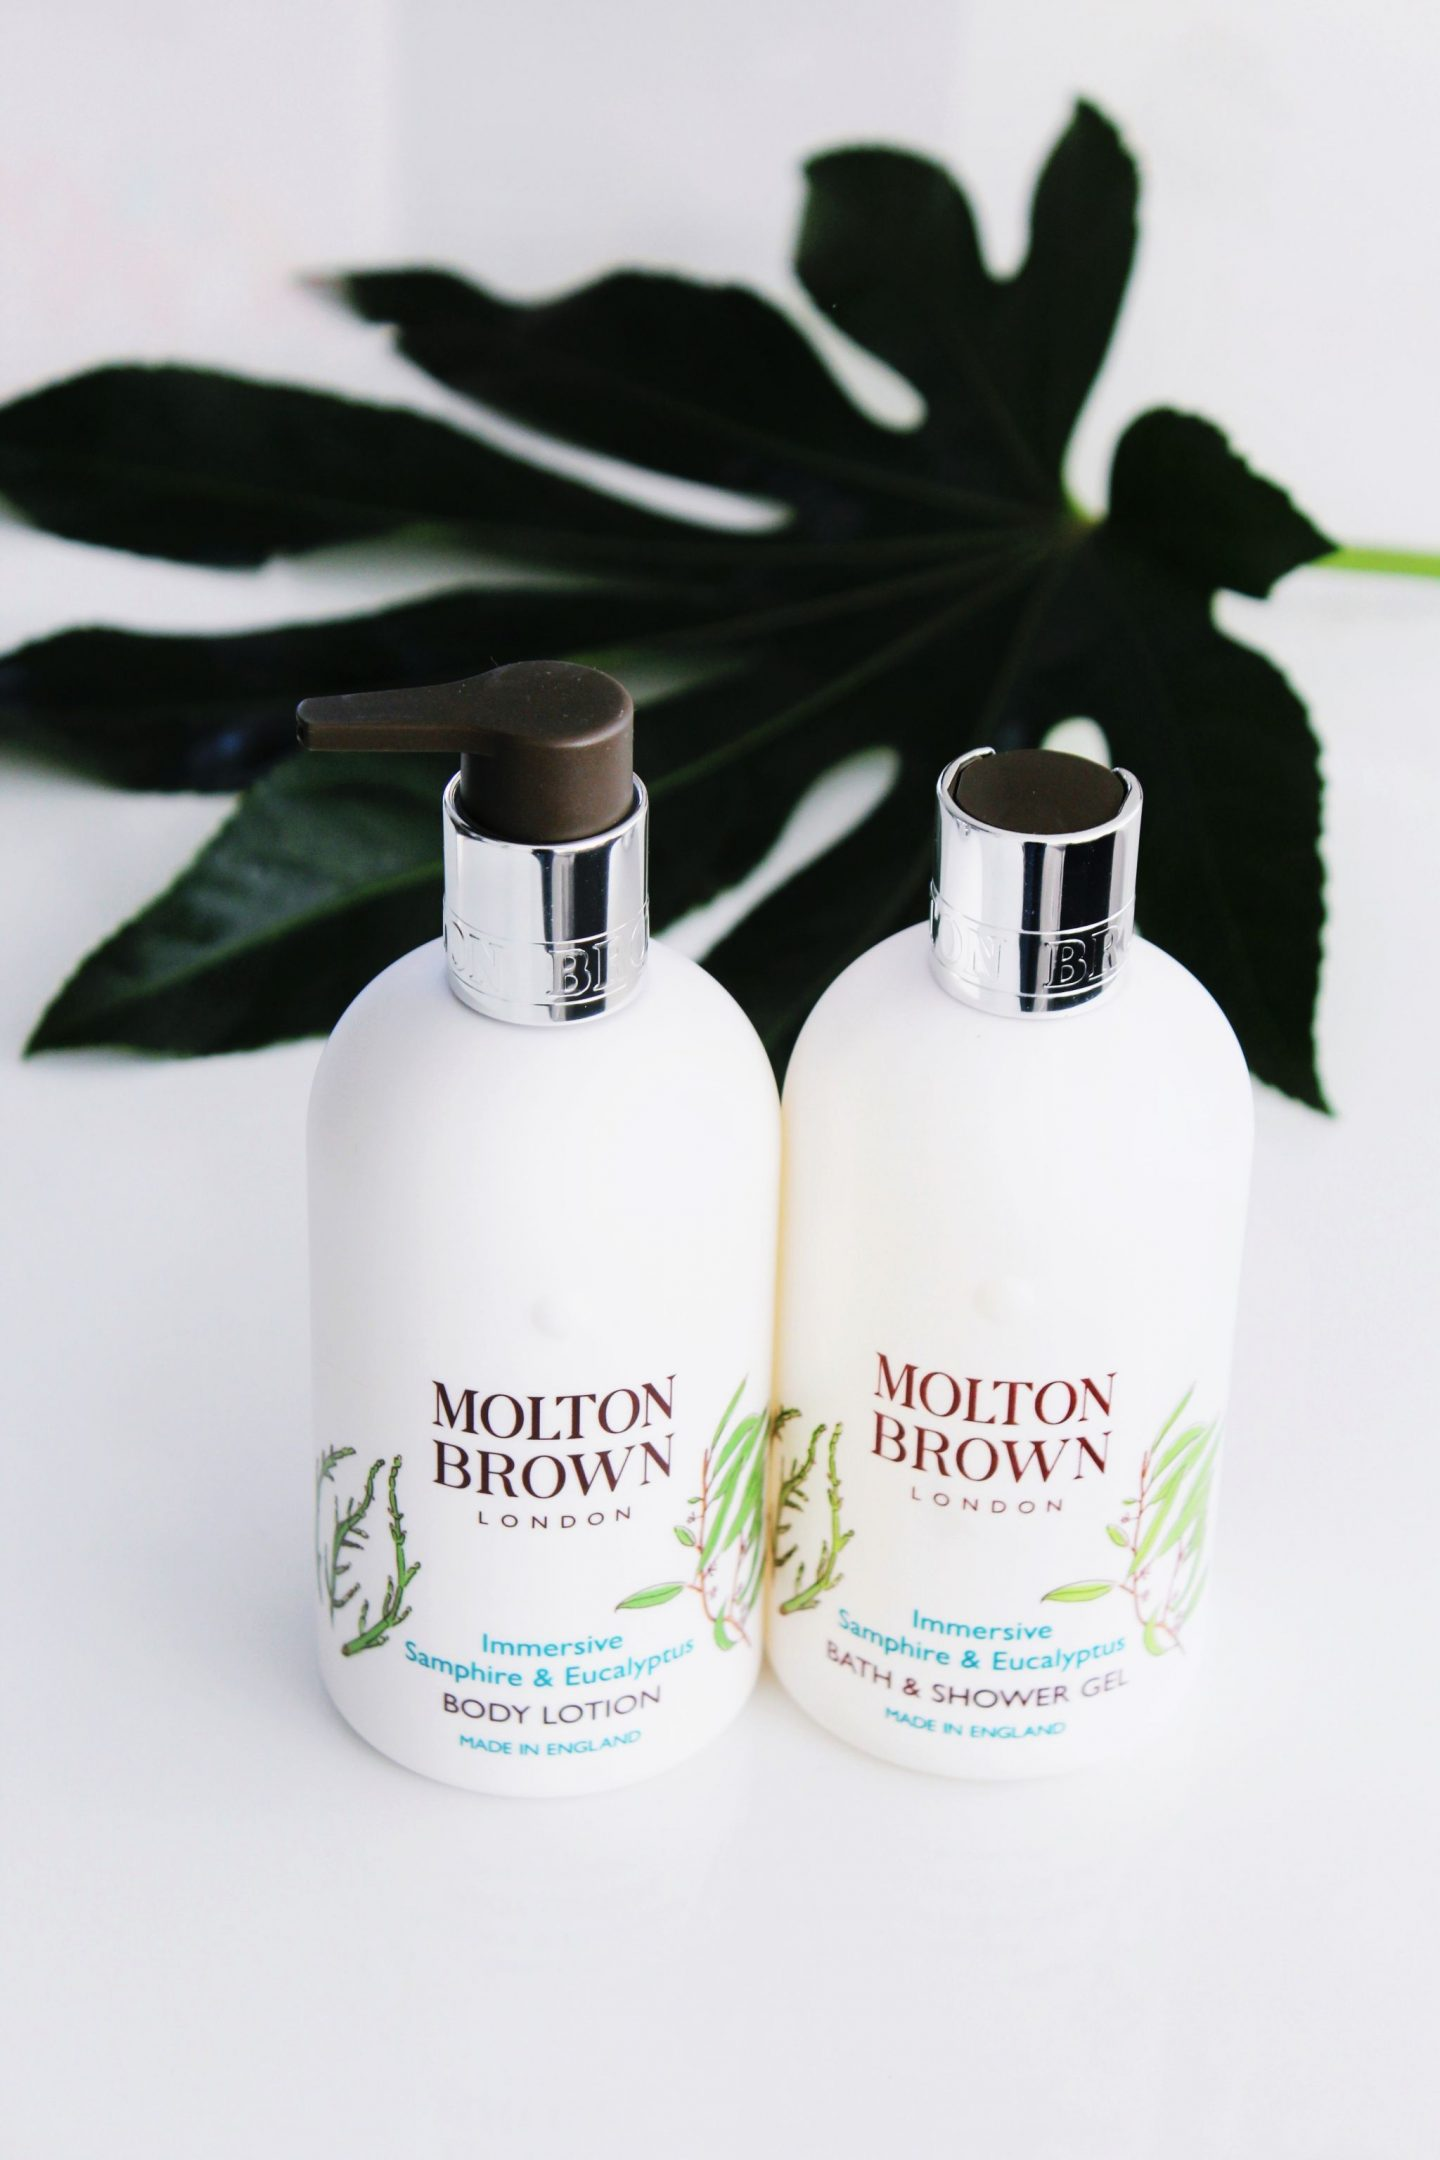 Molton Brown Giveaway - Miel and Mint lifestyle January favourites